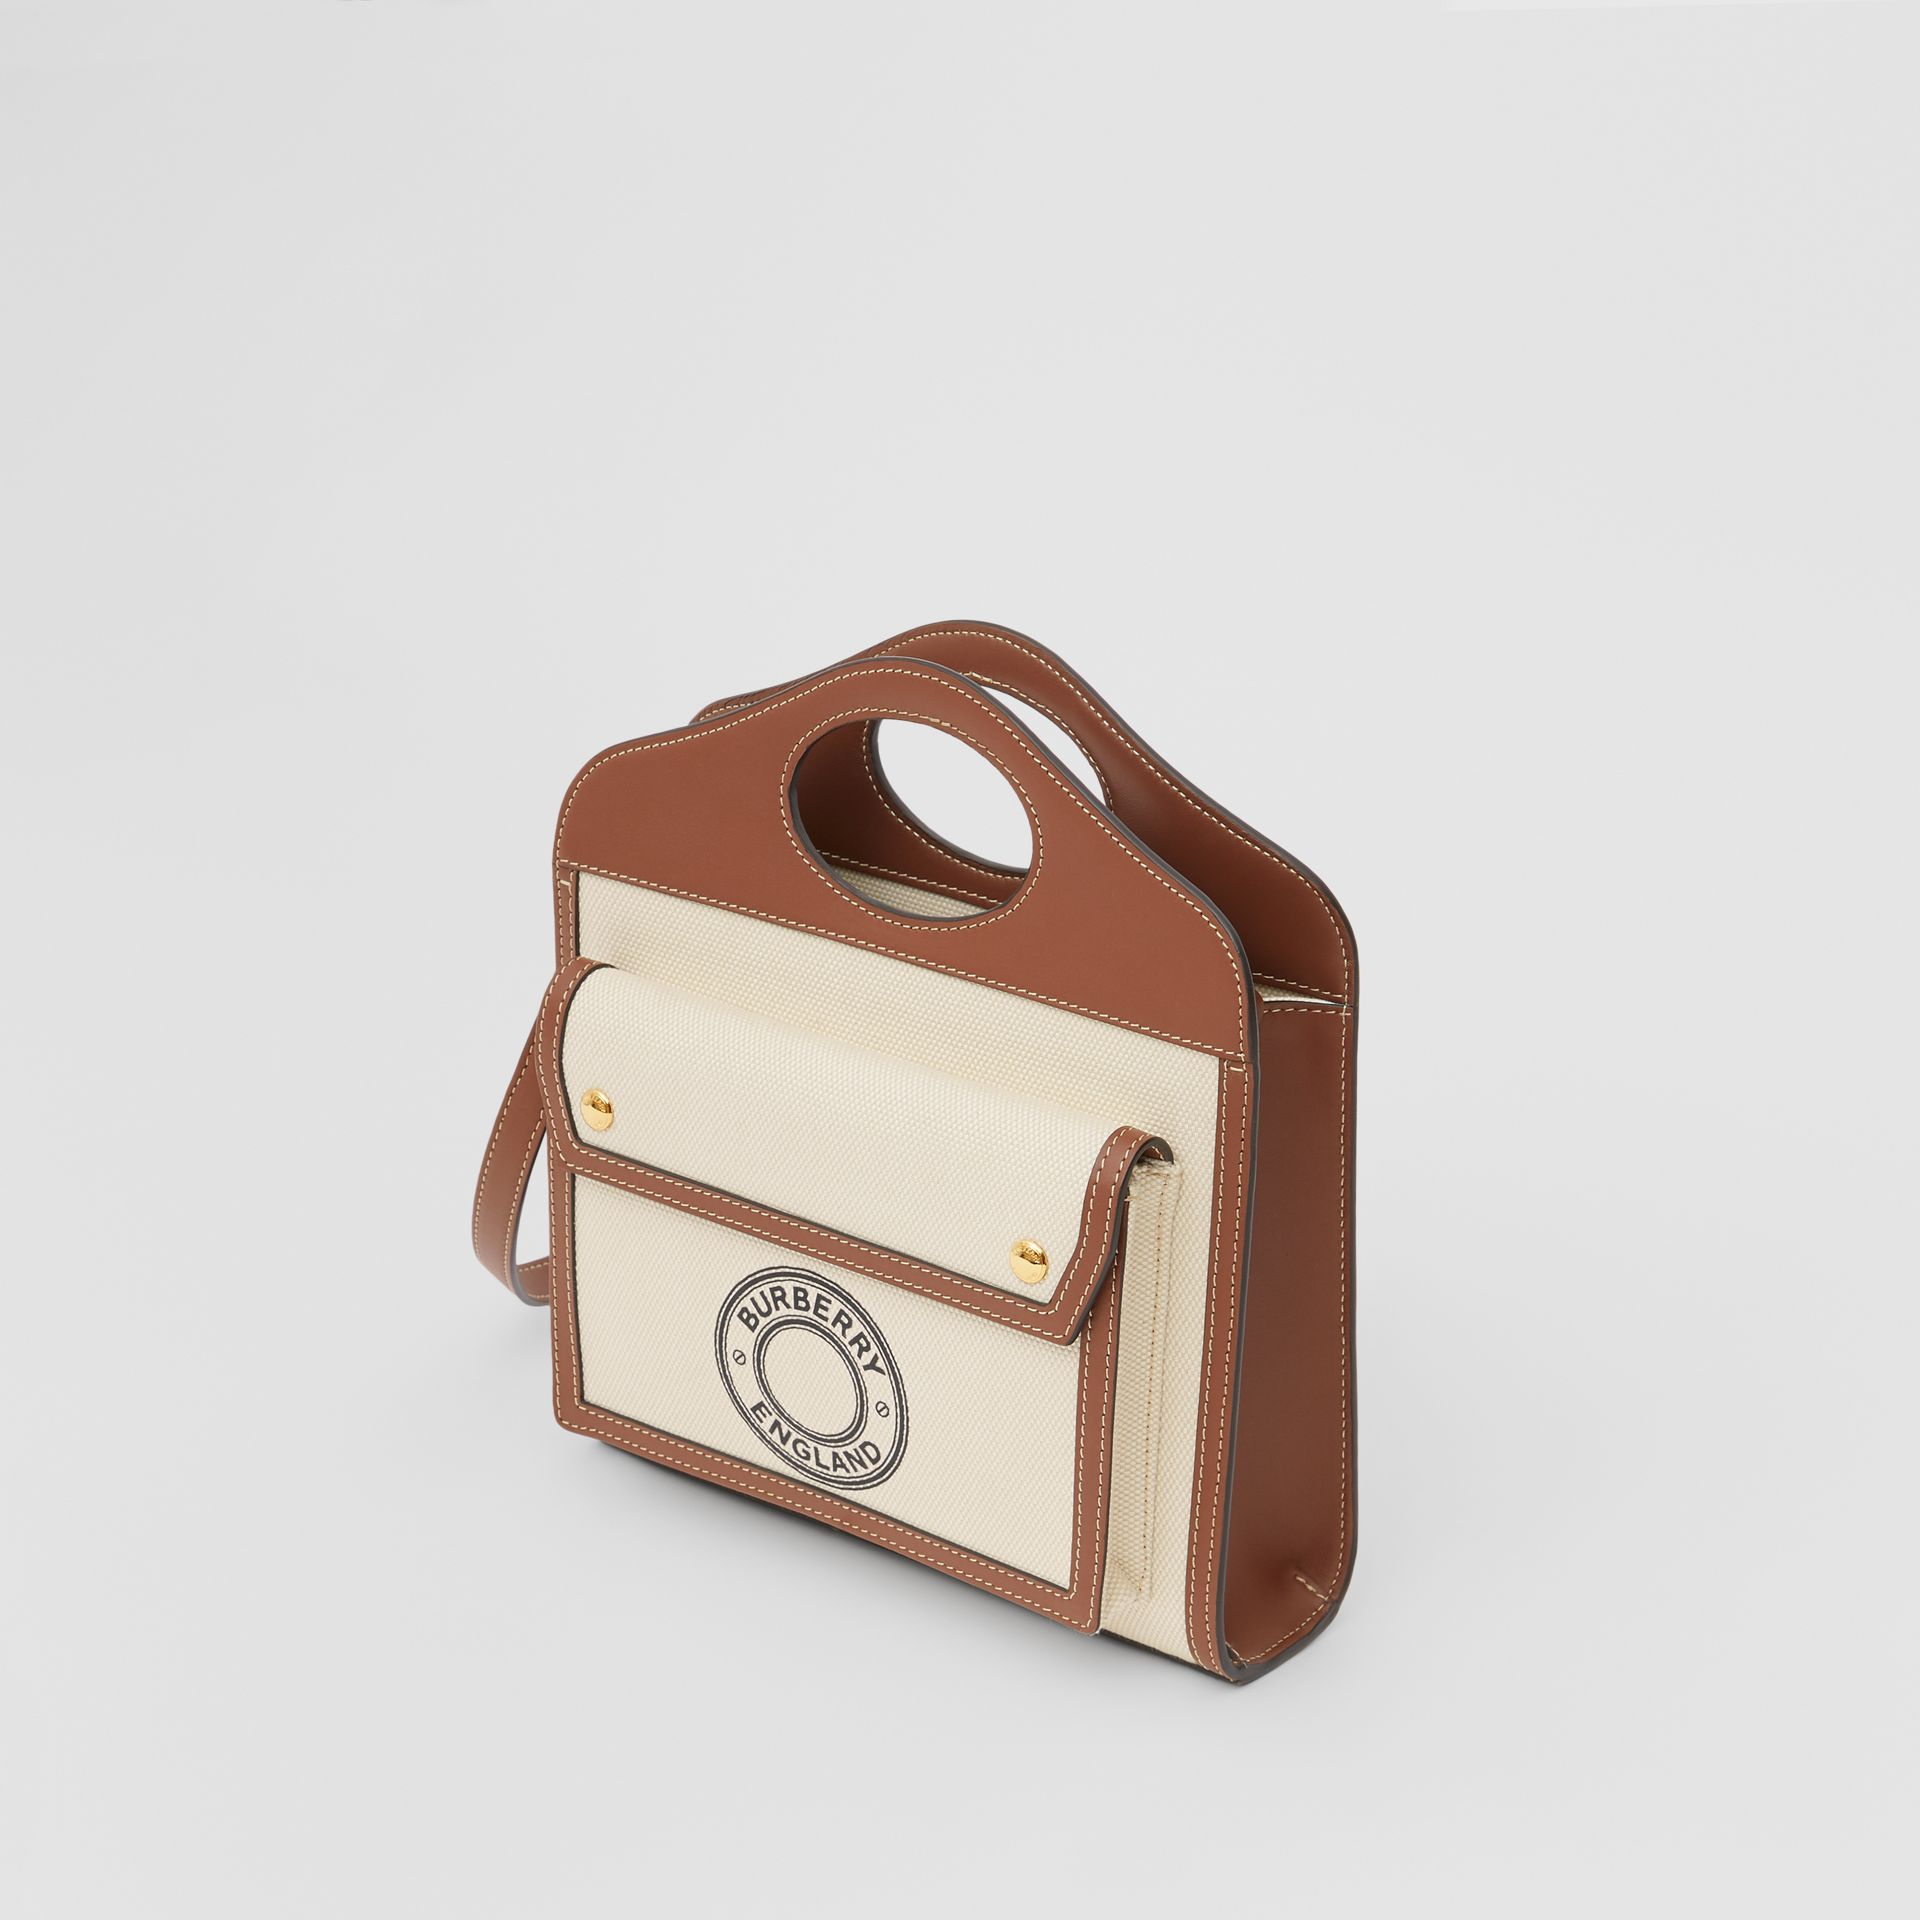 Mini Logo Graphic Canvas and Leather Pocket Bag in Tan - Women | Burberry Australia - gallery image 3